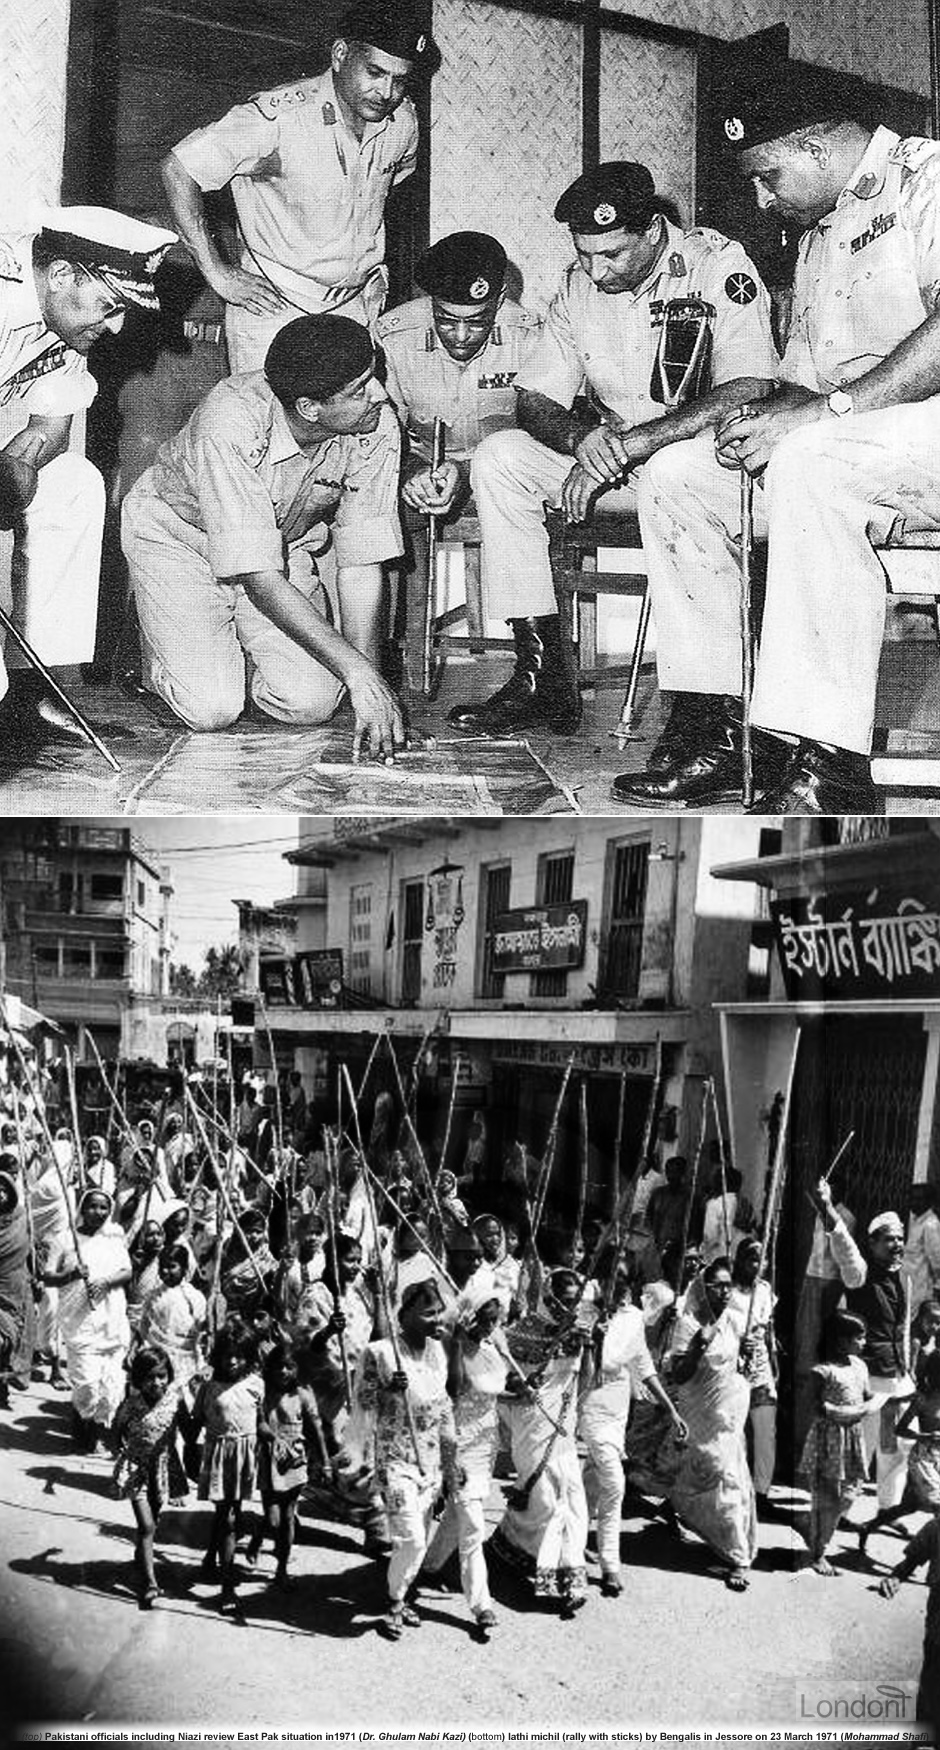 genocide of bangladesh essay This essay discusses how bass's book contributes to scholars' and policymakers' understanding of the genocide and the subsequent war between india and pakistan, as well as the role of the united states during the crisis.